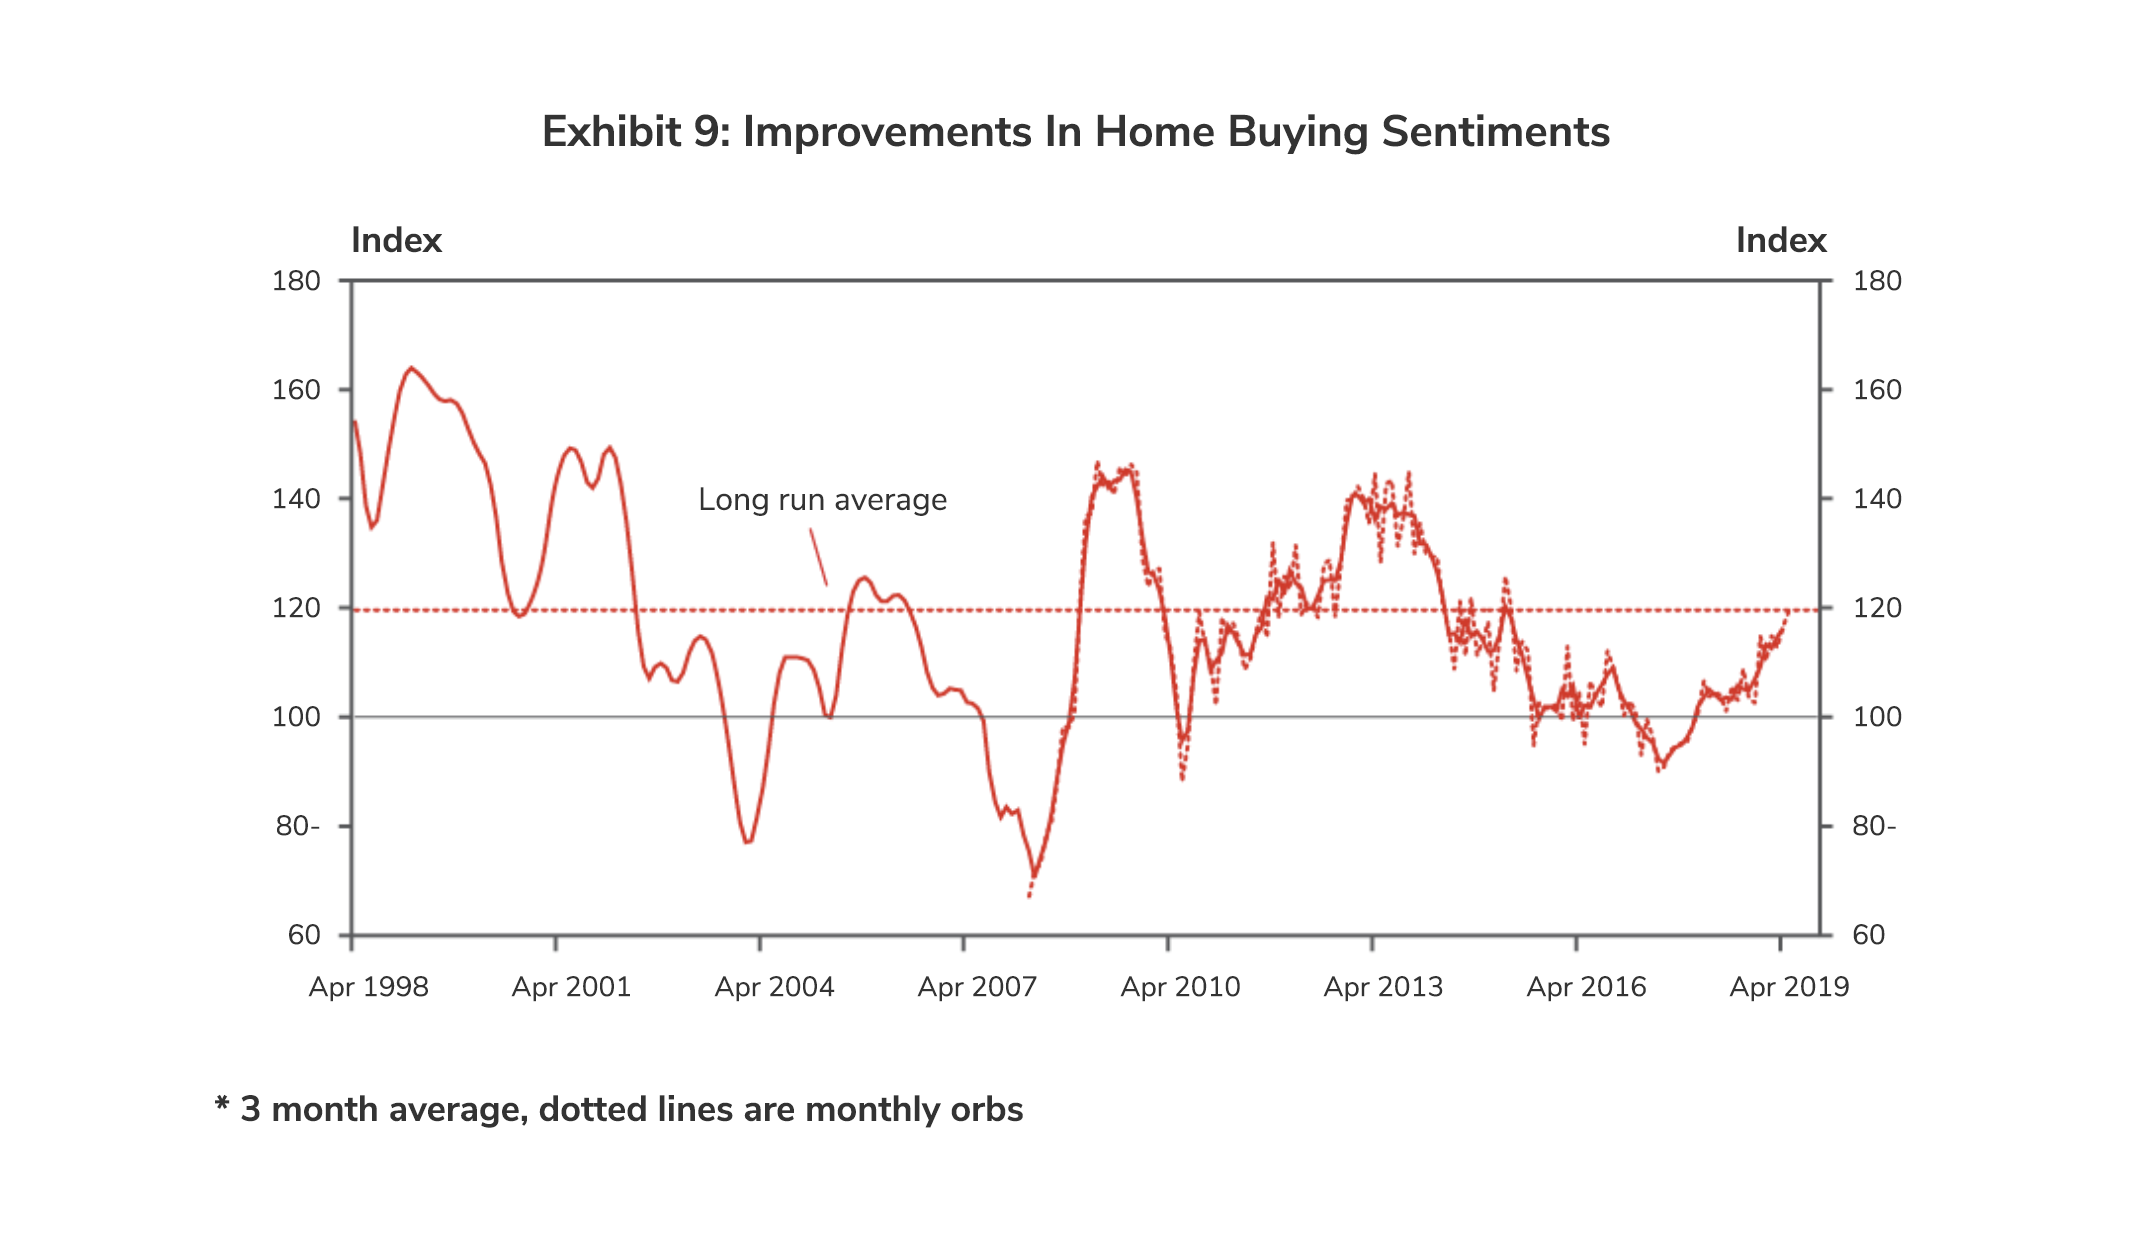 Improvements in Home Buying Sentiments